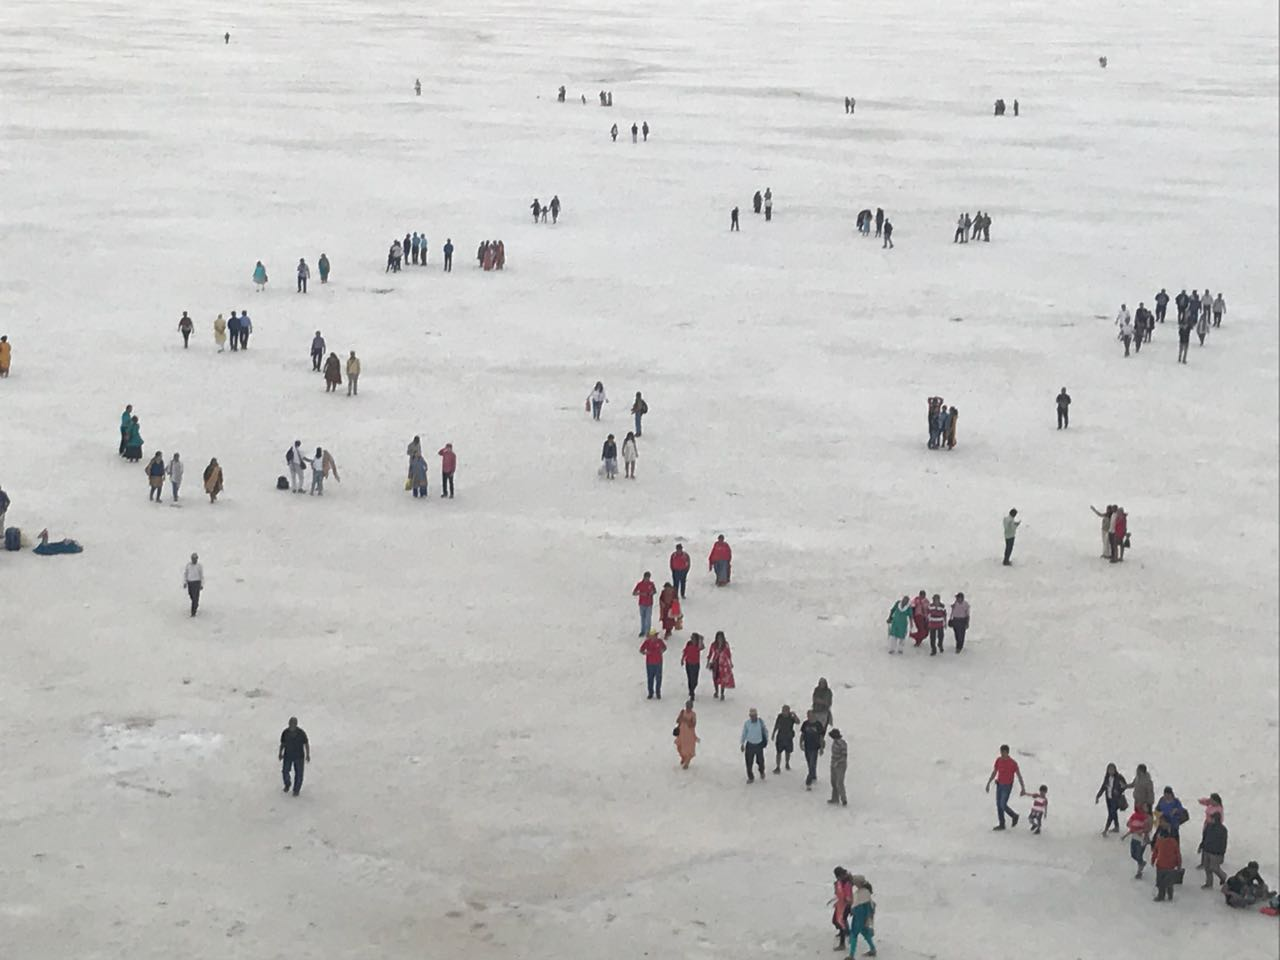 White Salt Pan at the Rann